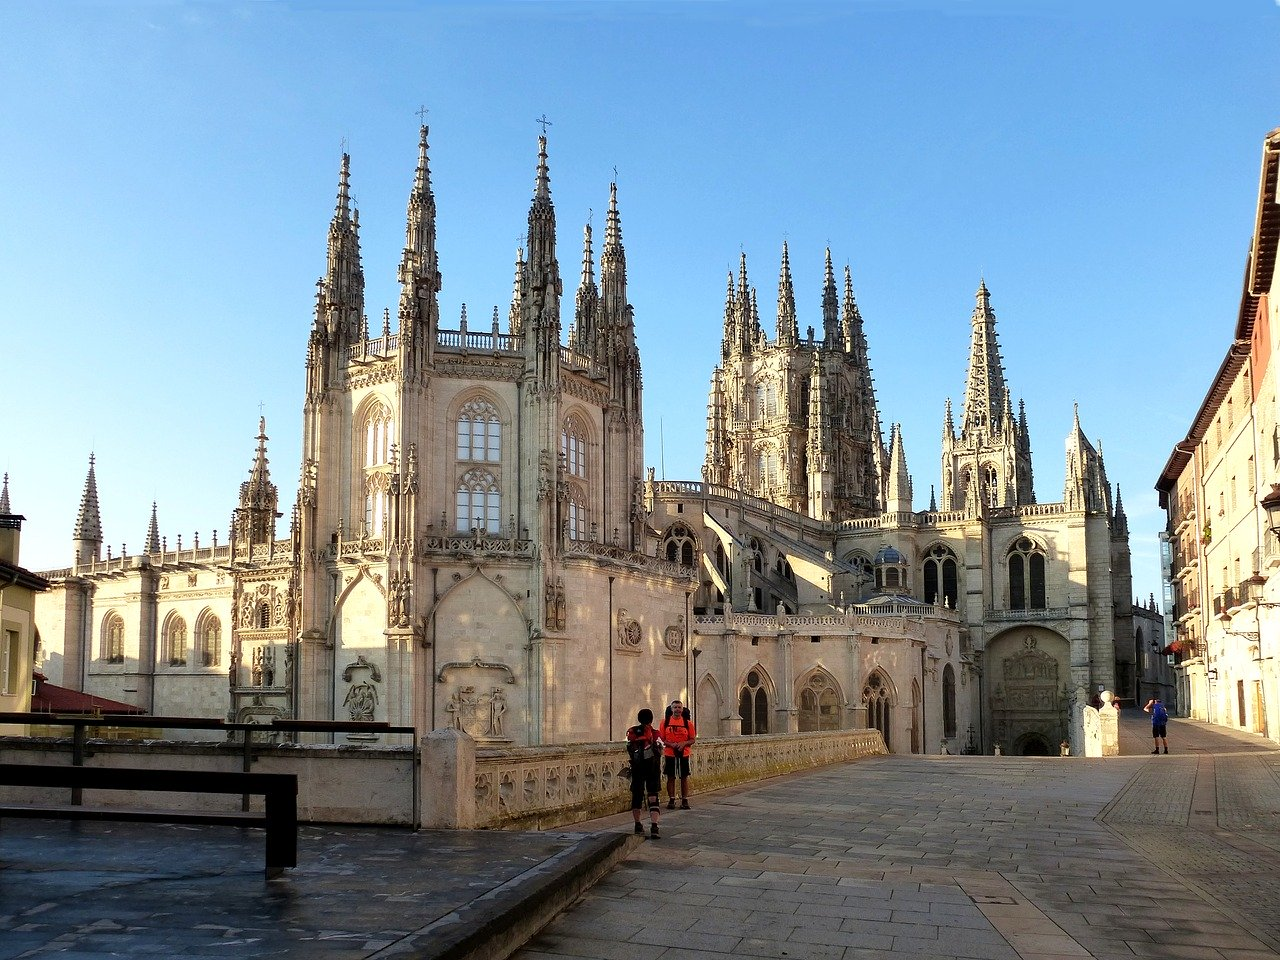 This shows a cathedral along the Camino de Santiago, one of the most popular pilgrimages